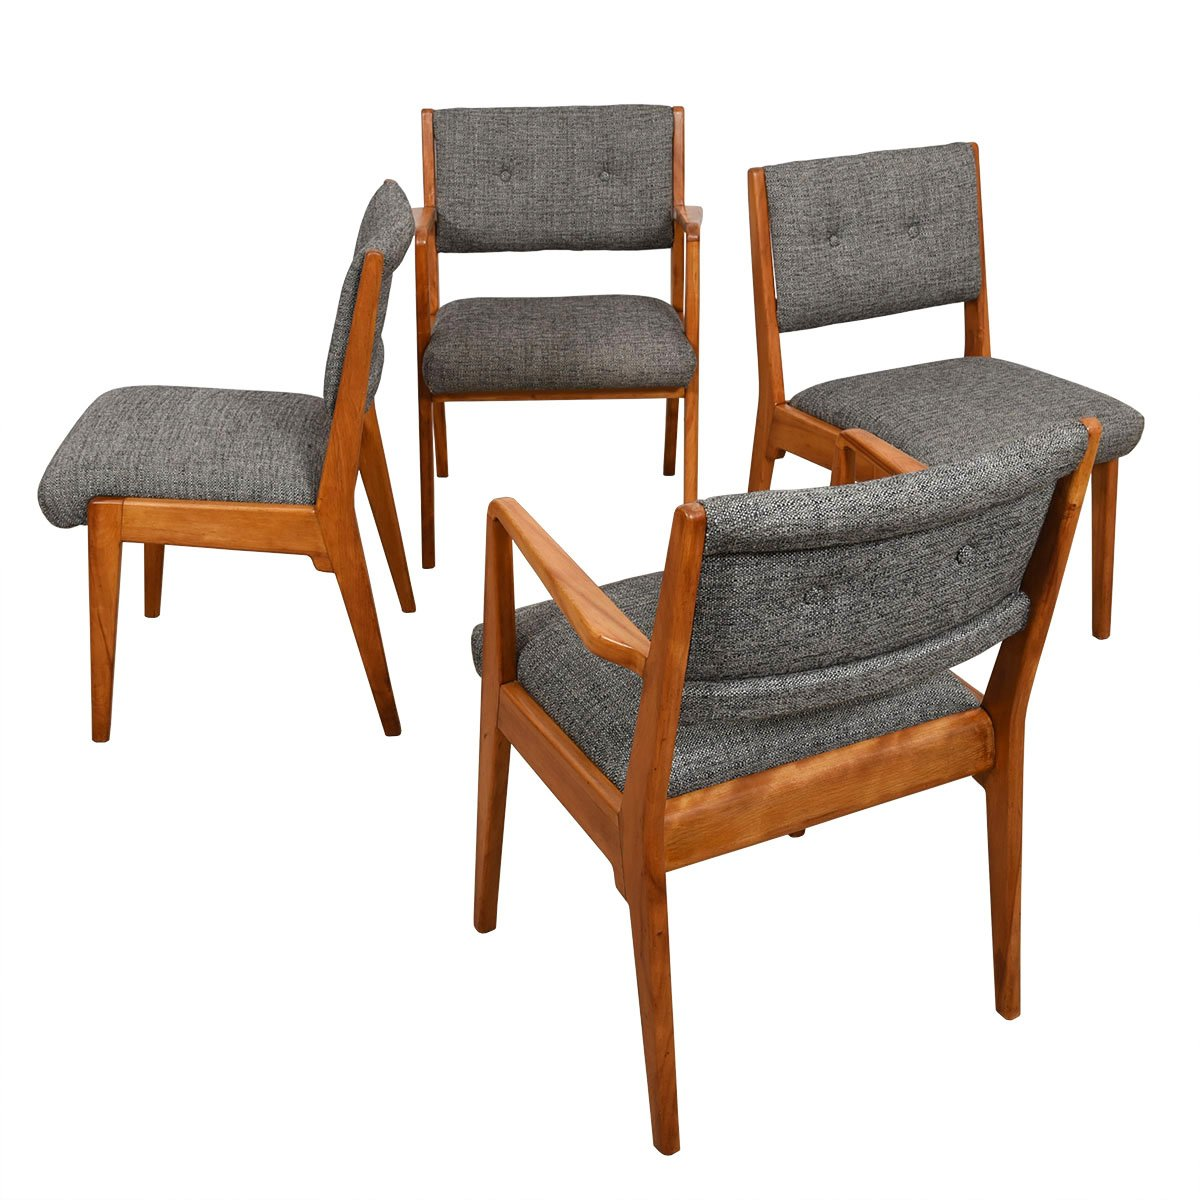 Set of 4 (2 Arm 2 Side) Reupholstered Dining Chairs by Jens Risom